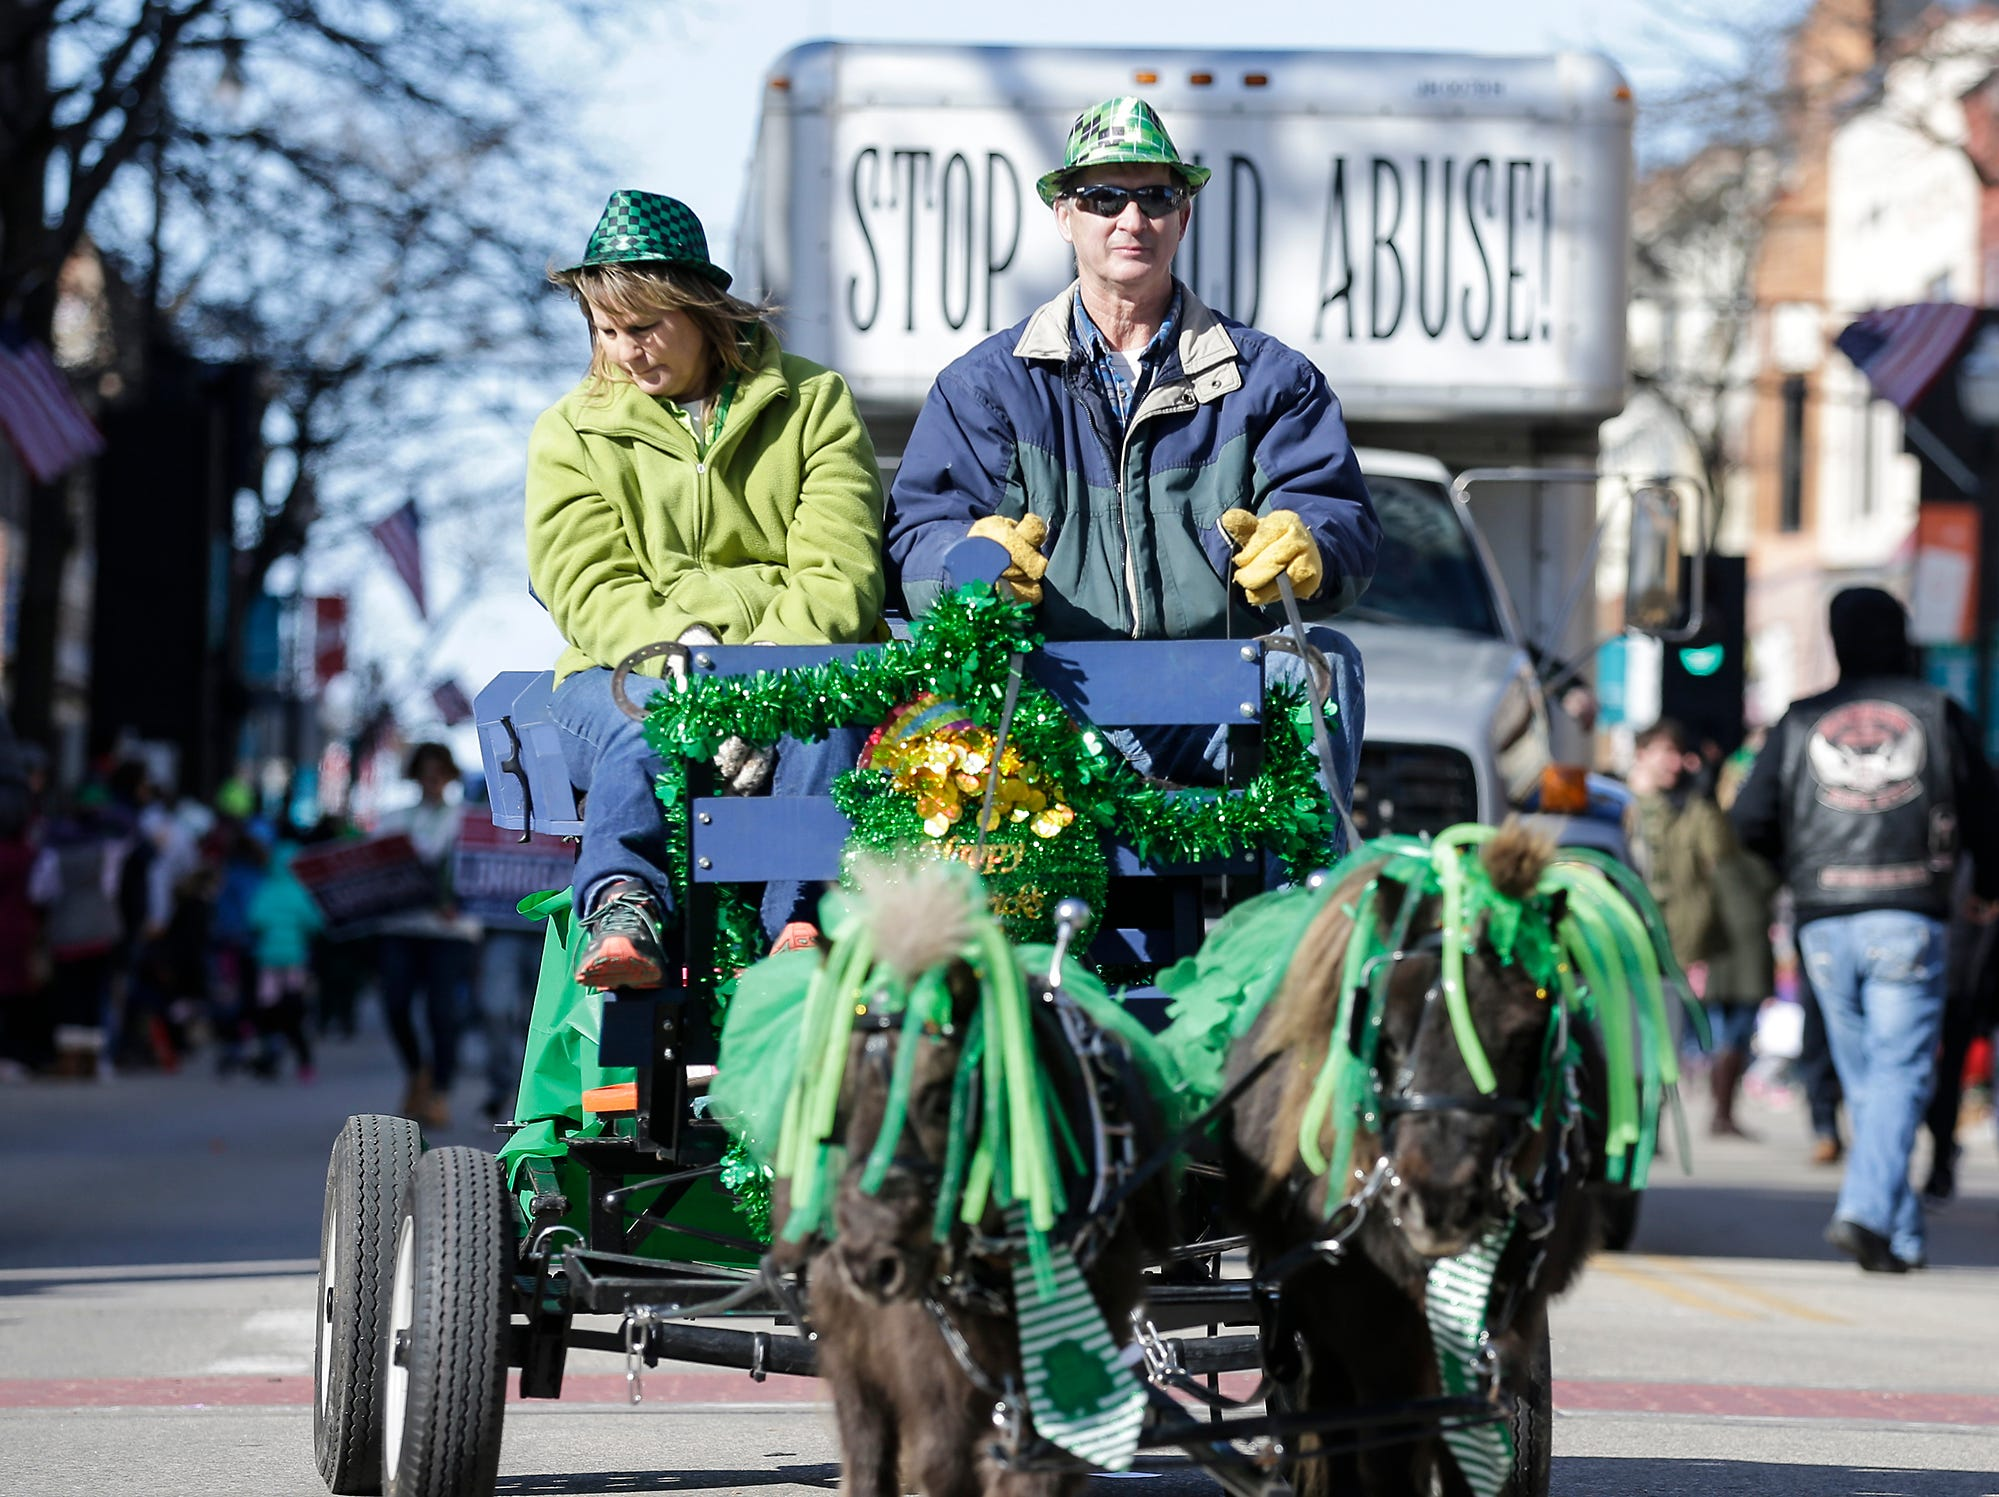 Barb and Kevin Statdmueller get pulled by Jack and Danny in the City of Fond du Lac St. Patrick's Day Parade Saturday, March 16, 2019 on Main Street in downtown Fond du Lac. Hundreds of people lined the street to watch over 50 parade participants. Doug Raflik/USA TODAY NETWORK-Wisconsin